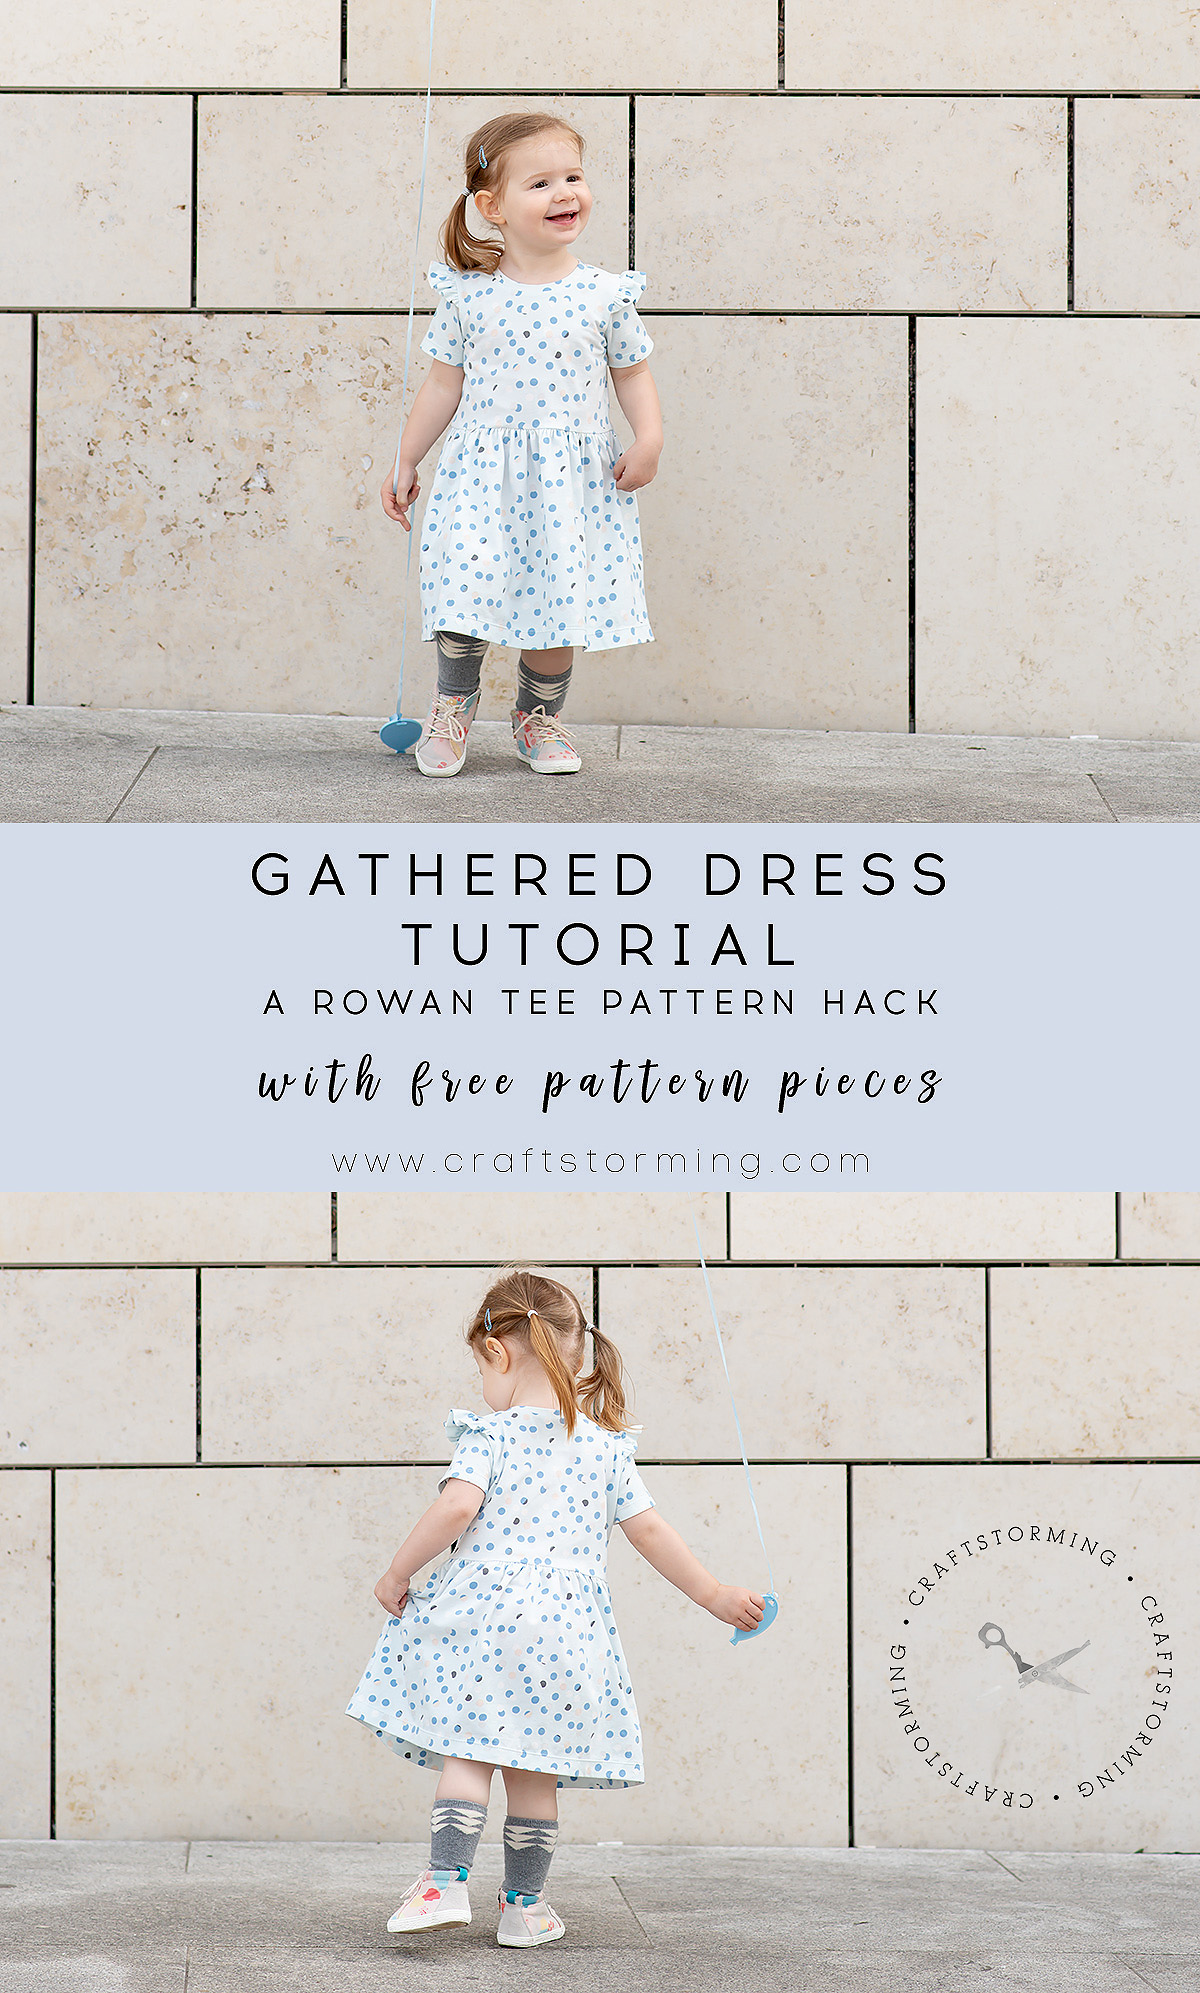 Craftstorming gathered dress tutorial